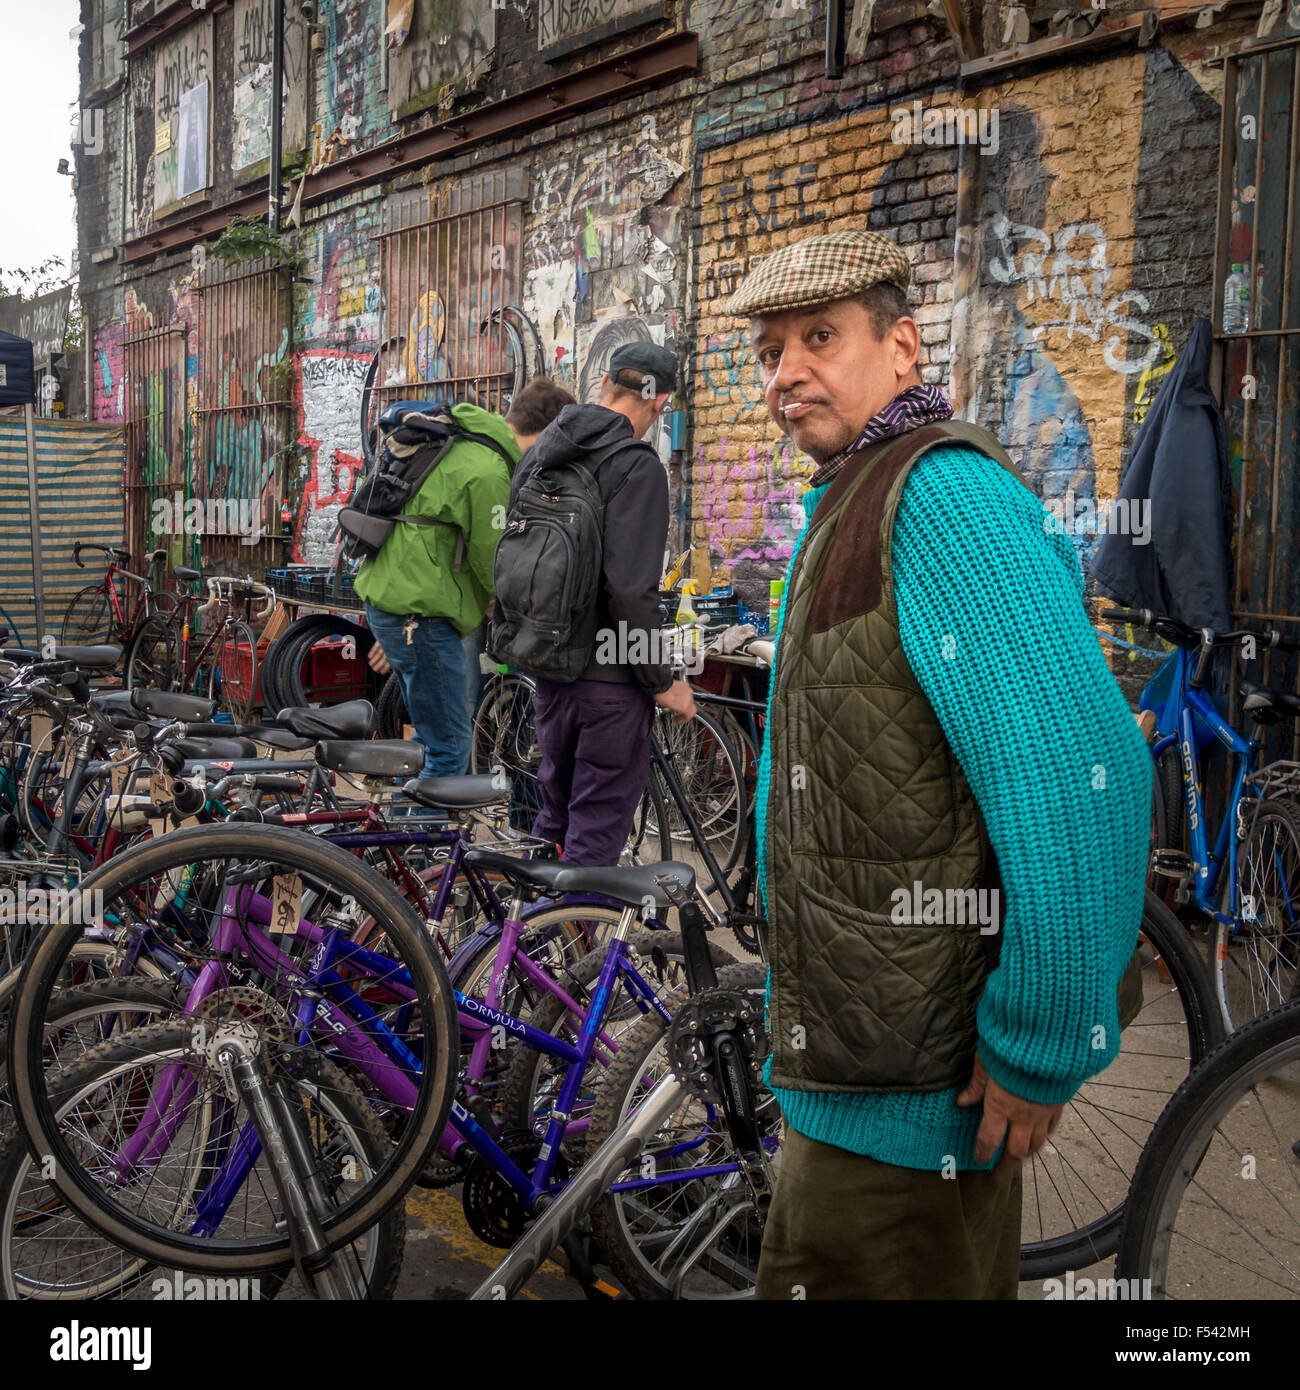 Uk Lifestyle: Street seller selling second hand bikes on Sclater Street, off Brick Lane in the East End of London. Stock Photo